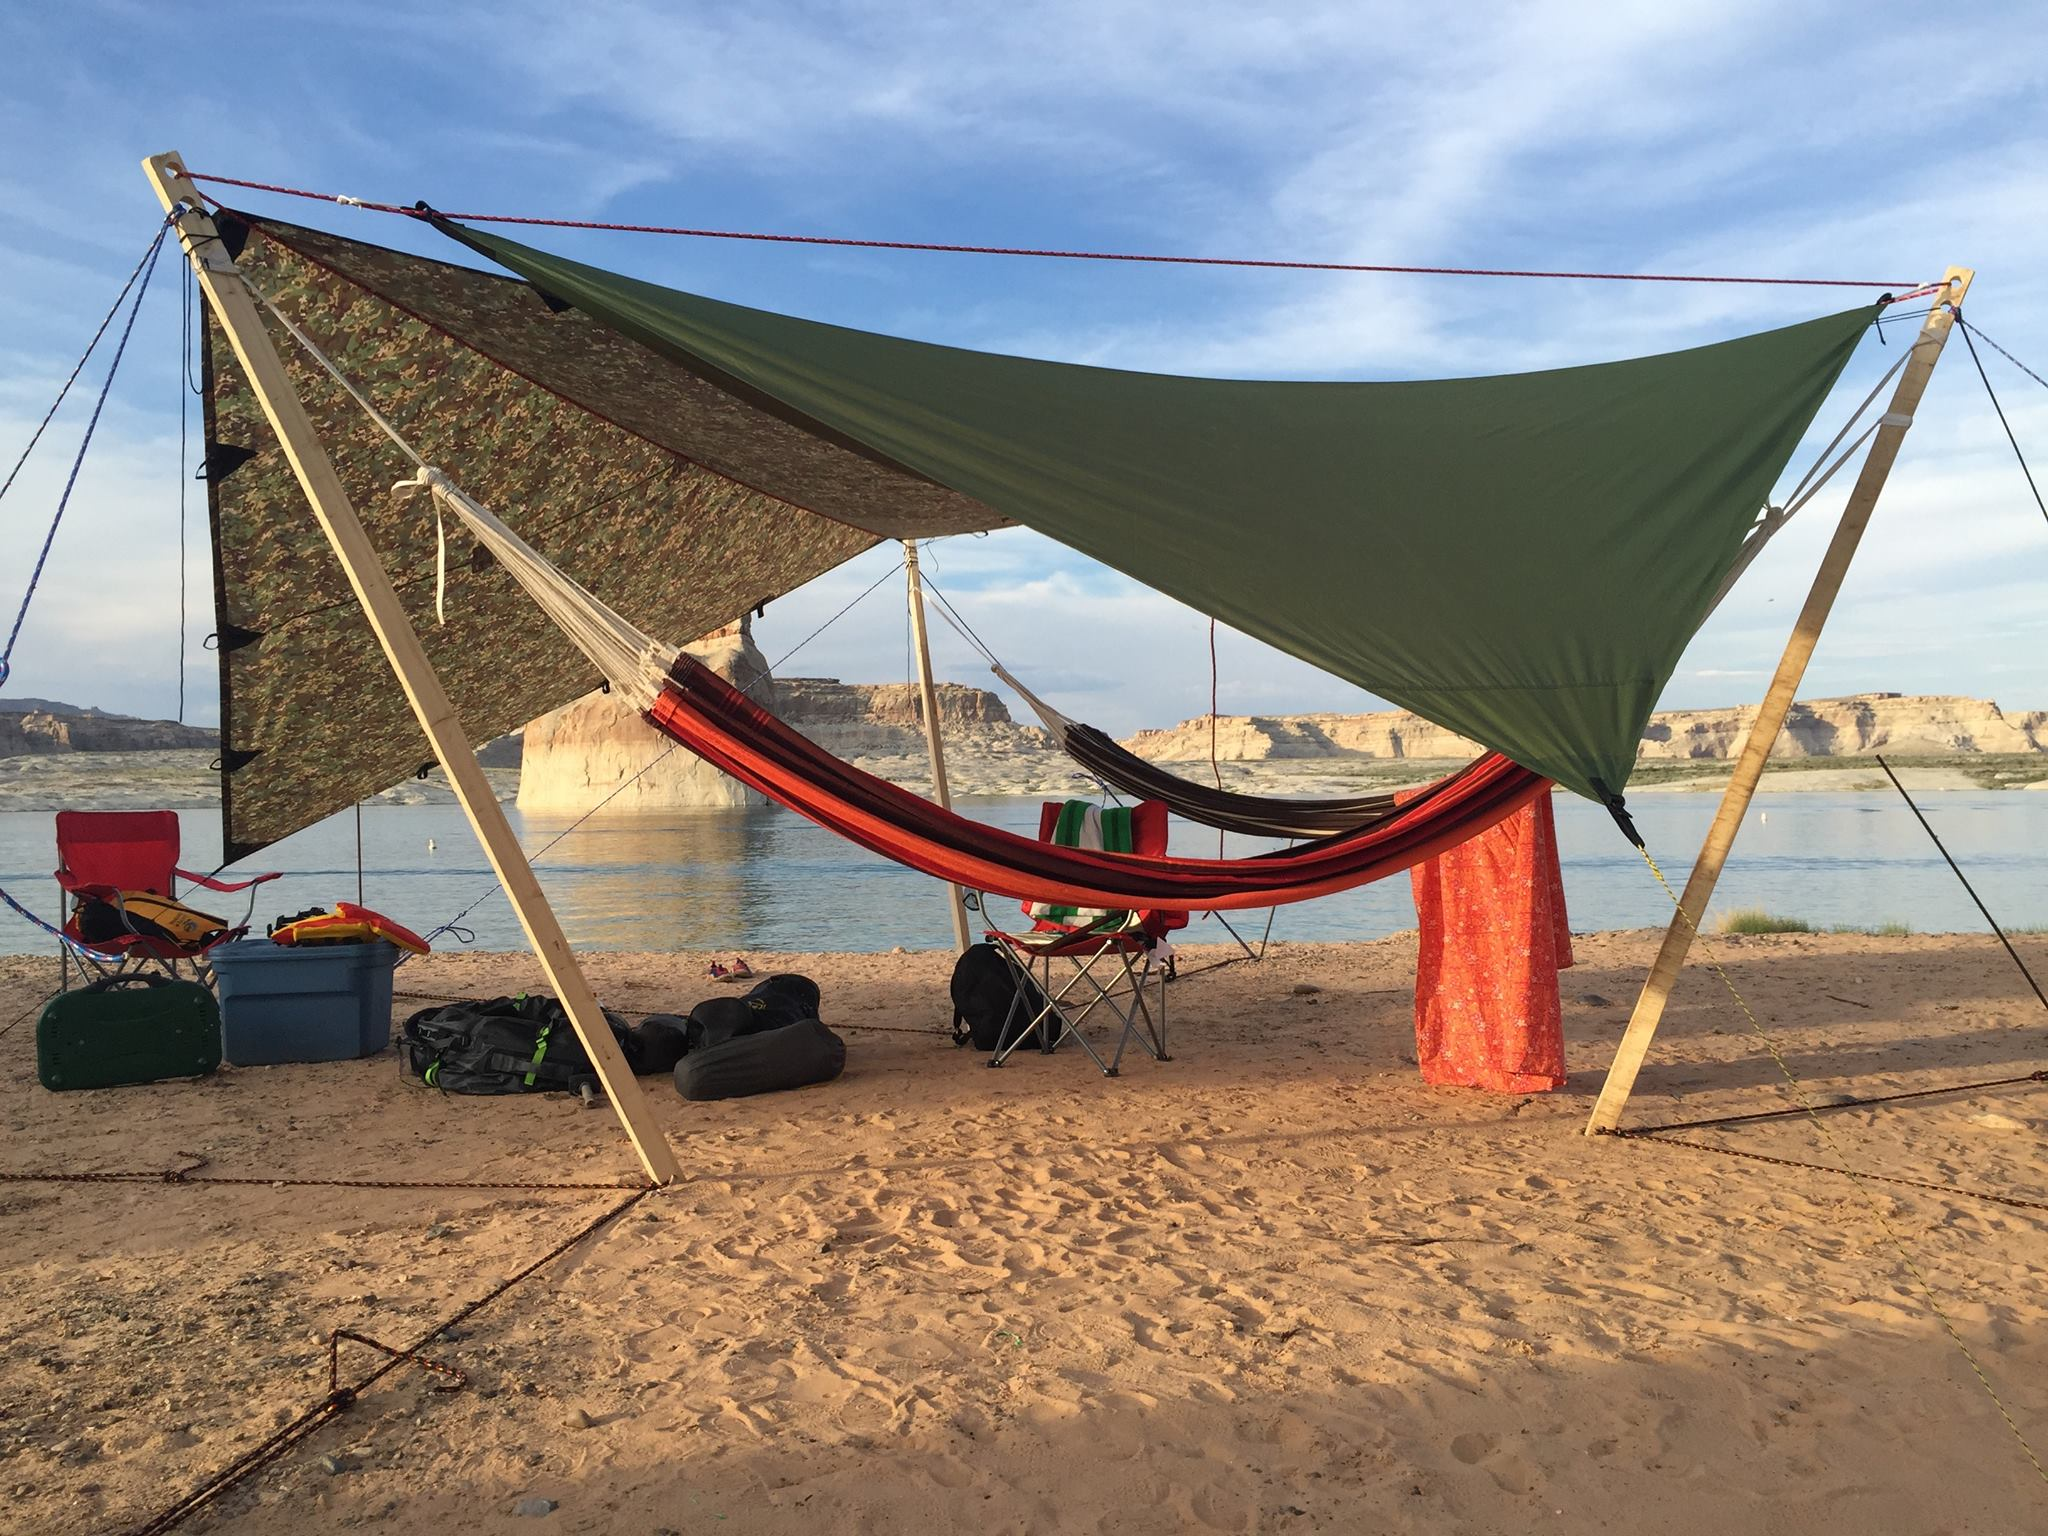 the byer of maine paradiso double hammock on the shores of lake powell arizona  dd tarp 3x3 mc review   the ultimate hang  rh   theultimatehang